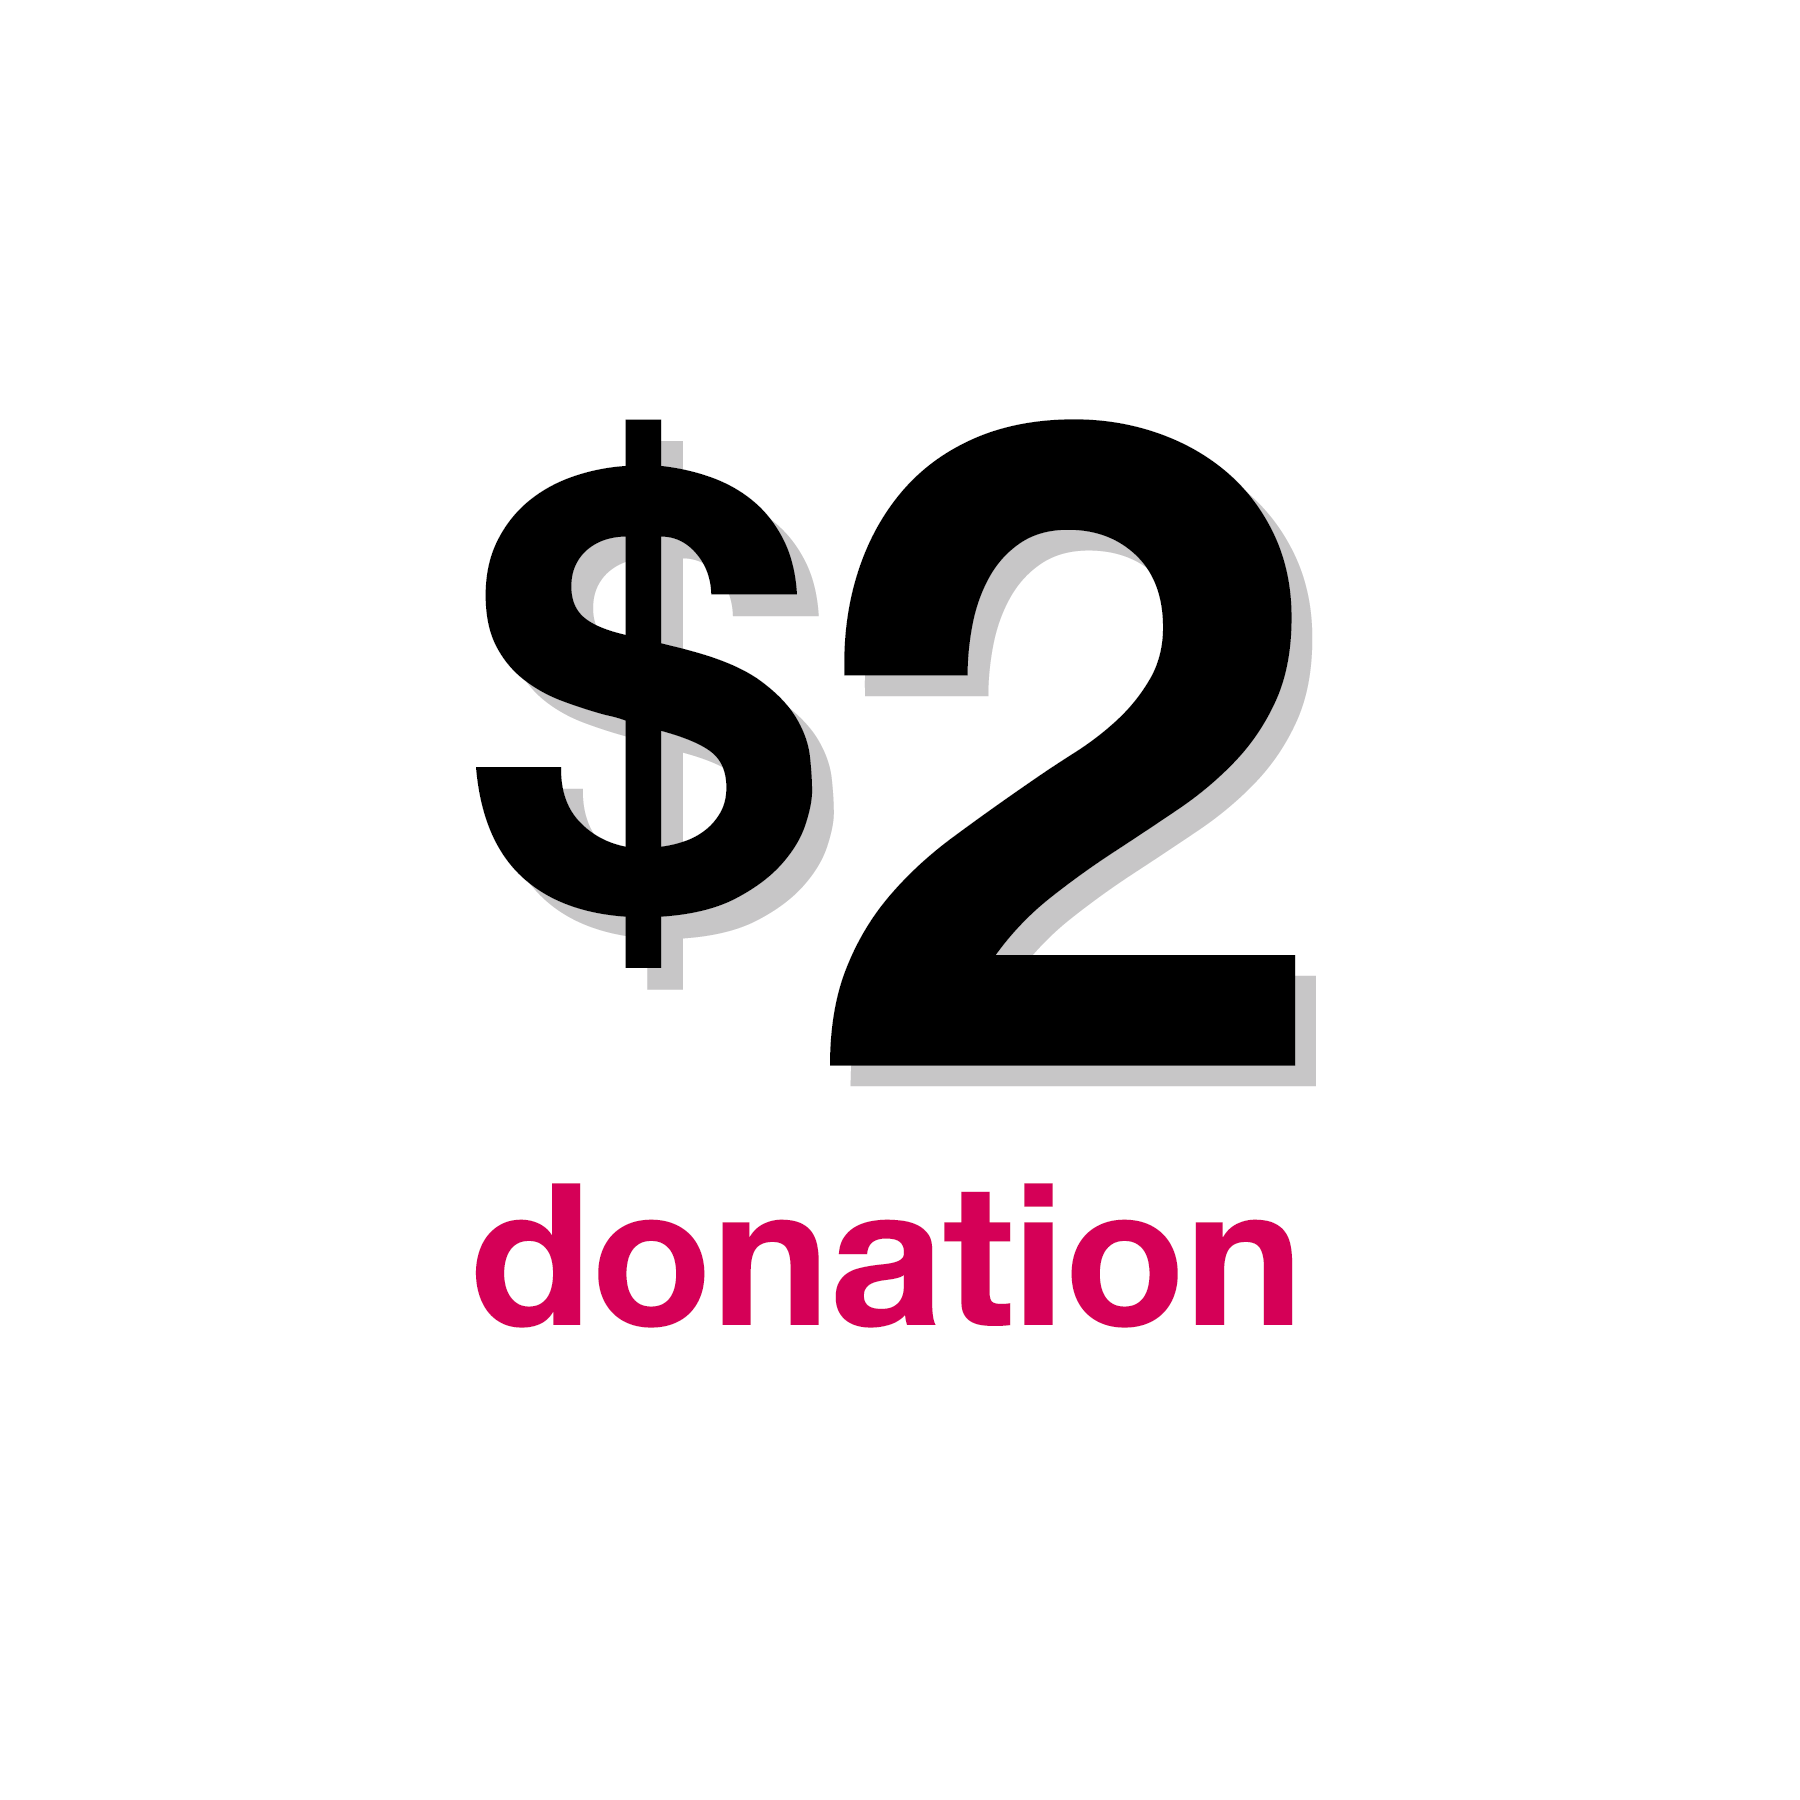 I Am Second $2 Donation